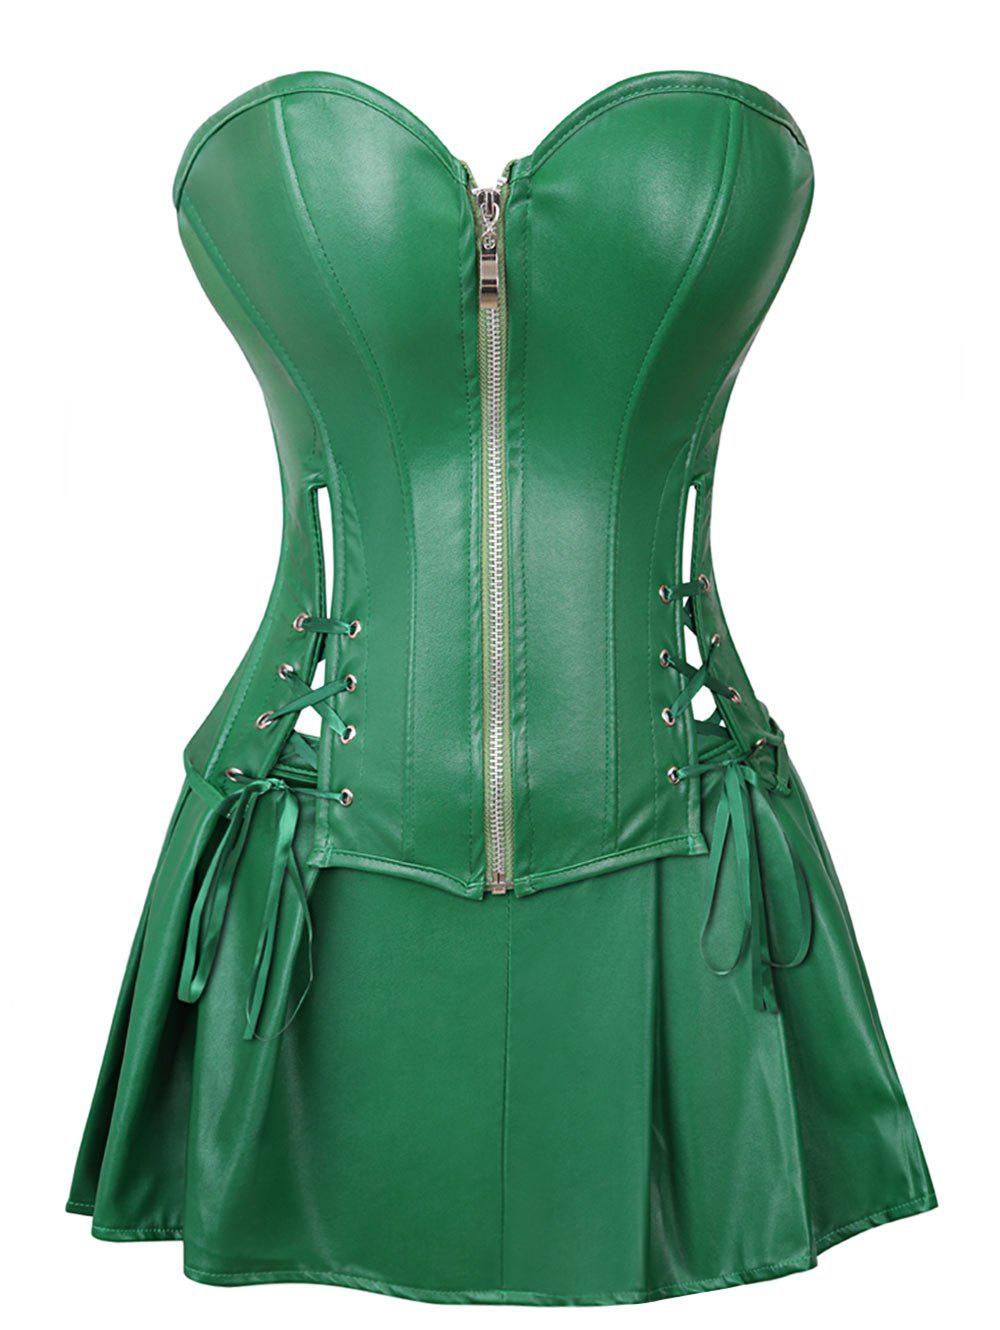 Chic Strapless Plus Size Lace Up Corset with Mini Skirt